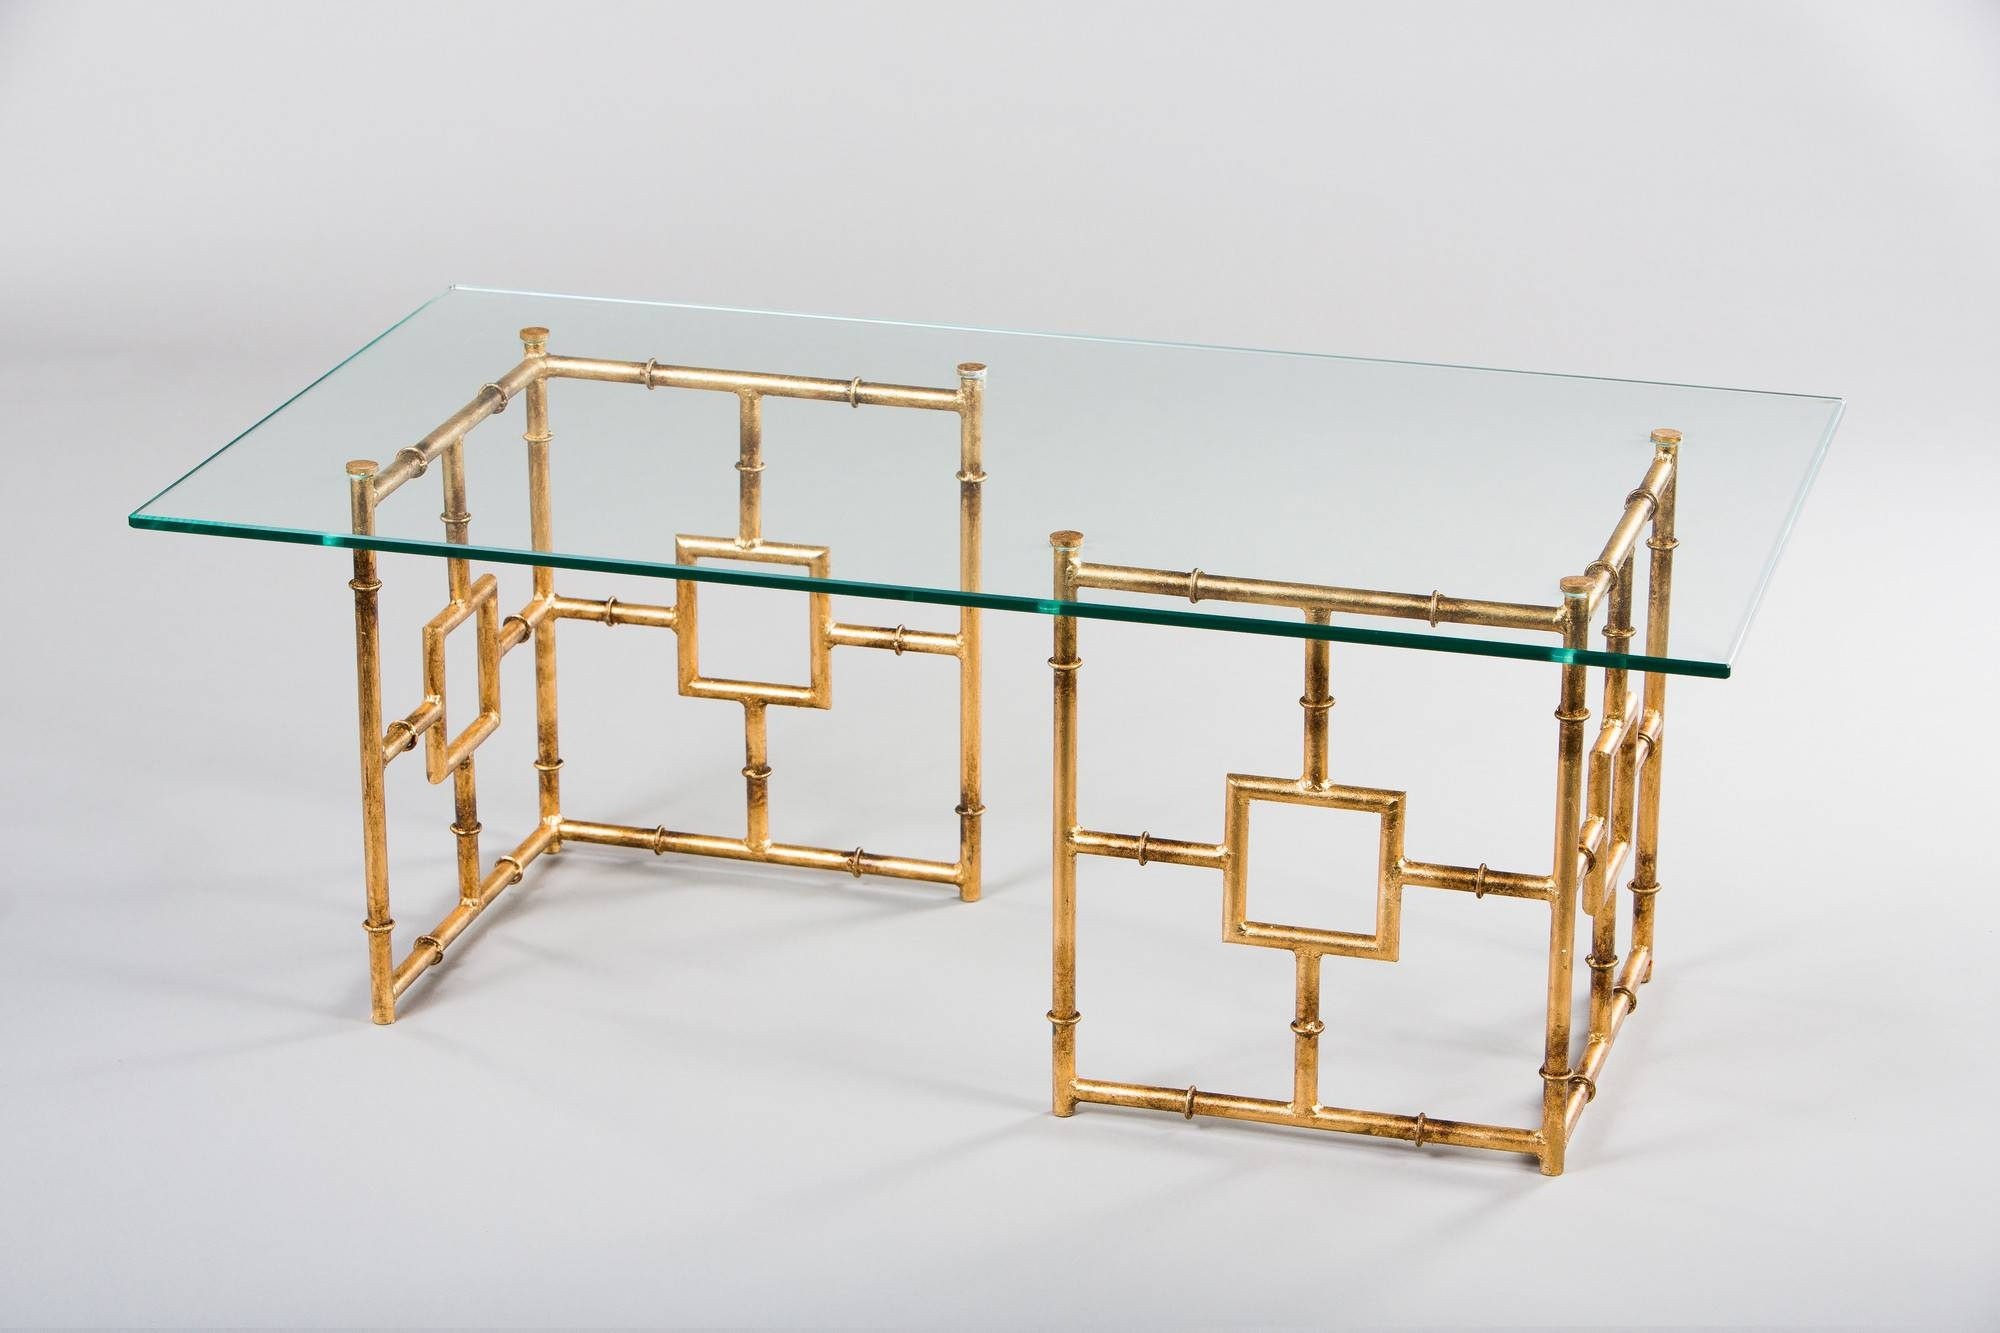 Gold Glass Coffee Table Sunpan Cielo Goldcolored Steel Round intended for Glass Gold Coffee Tables (Image 20 of 30)